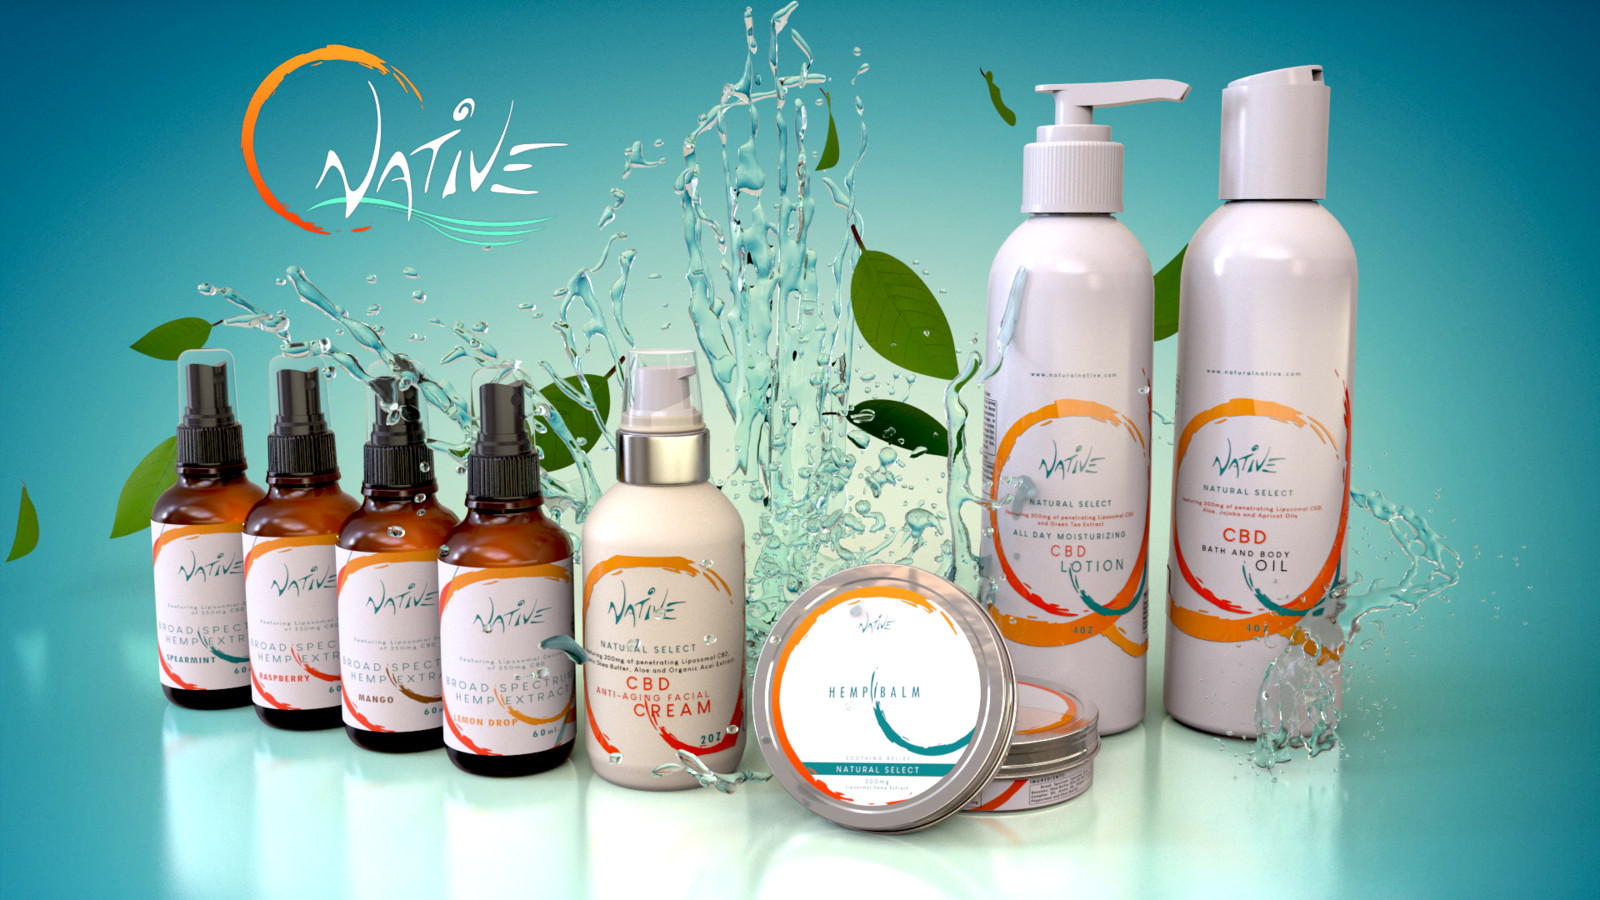 Natural Select Product Line